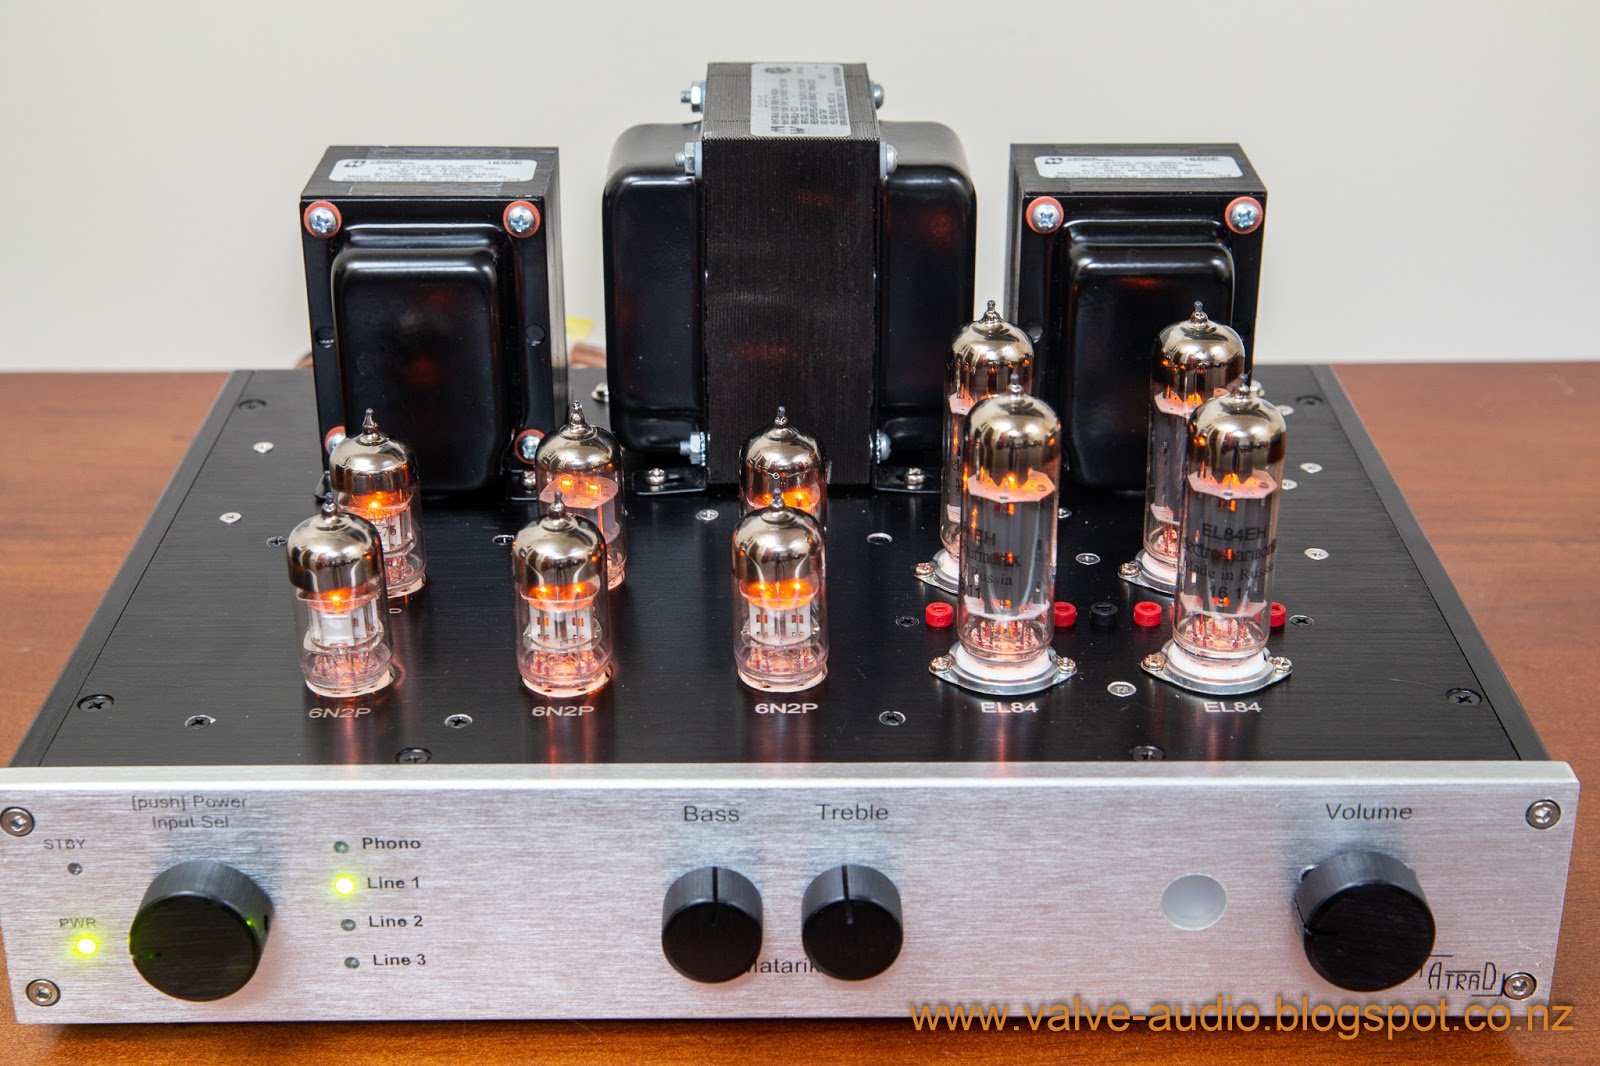 Hifi Rack Nz Vinyl And Valves Tubes And Turntables